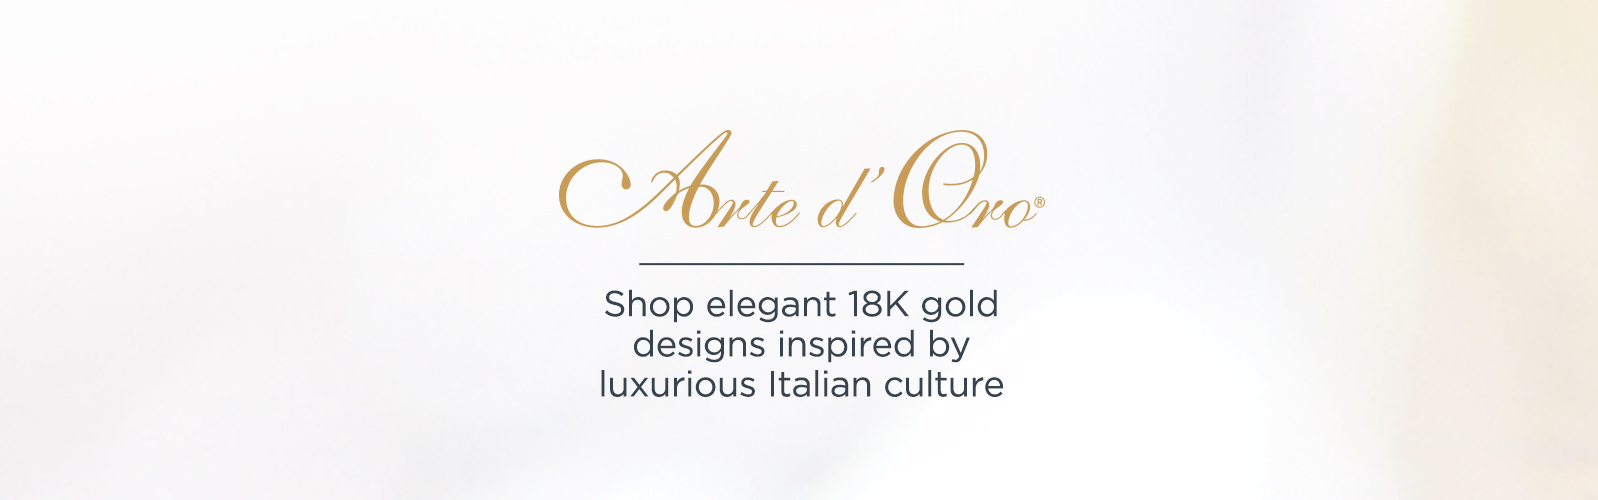 Arte d'Oro® 18K Gold Italian Shop elegant 18K gold designs inspired by luxurious Italian culture